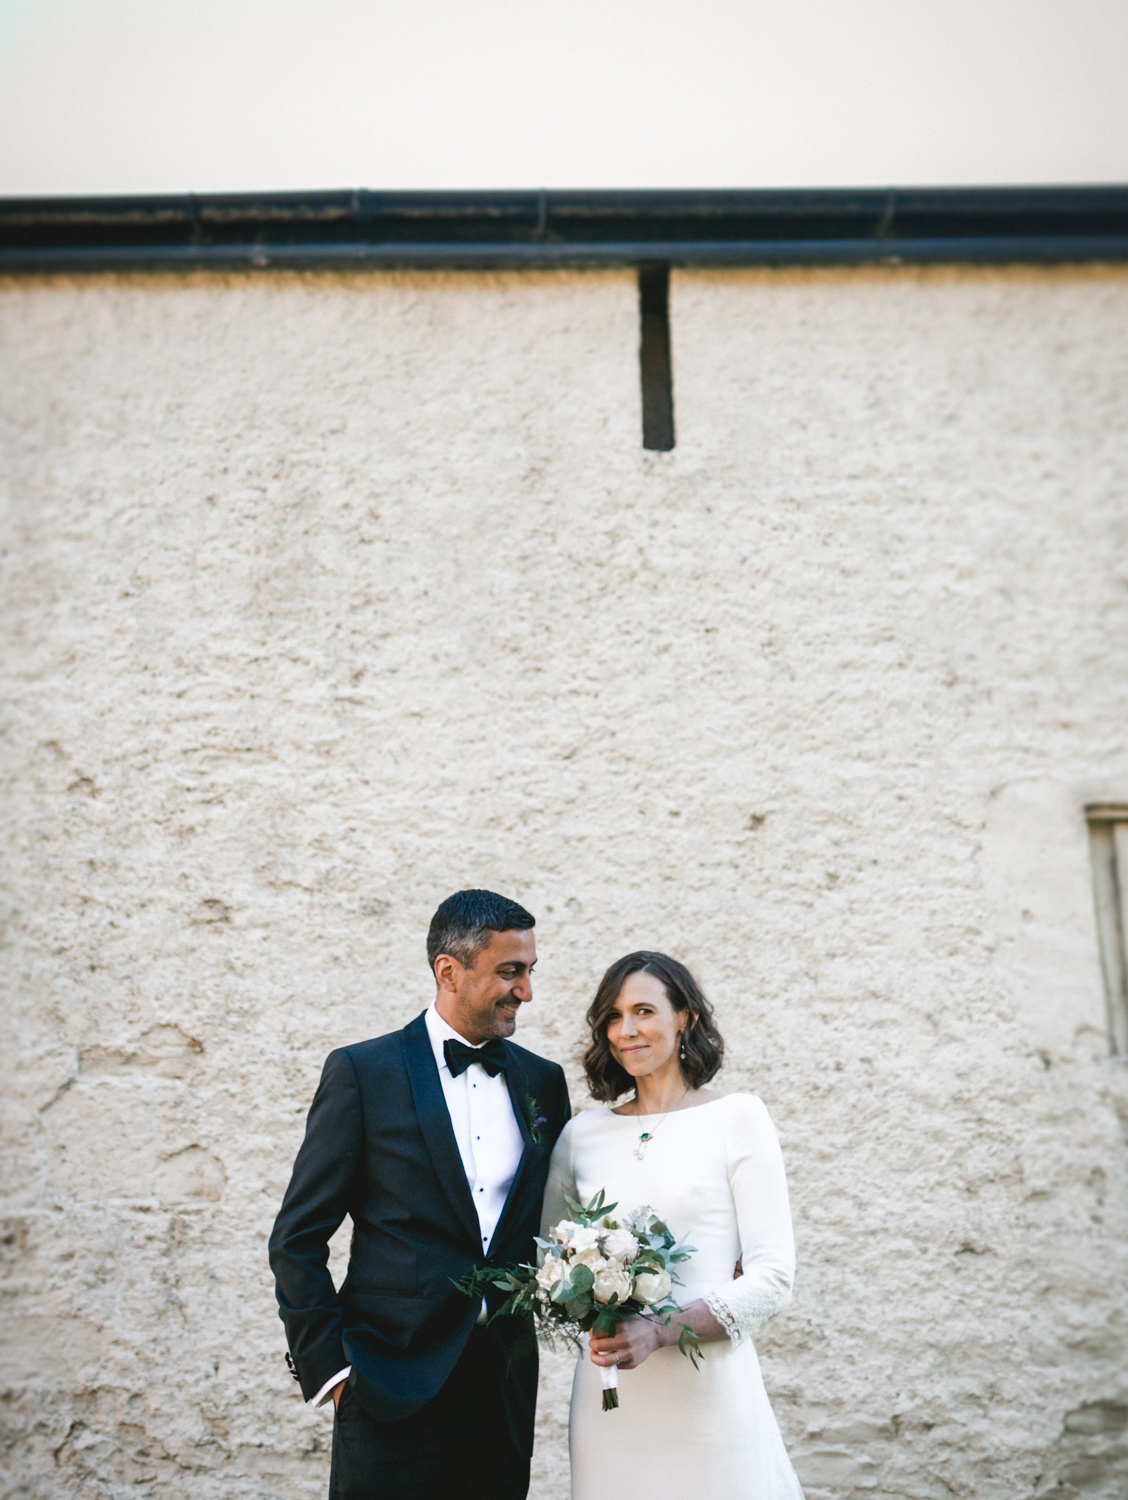 Dublin City wedding-53.jpg